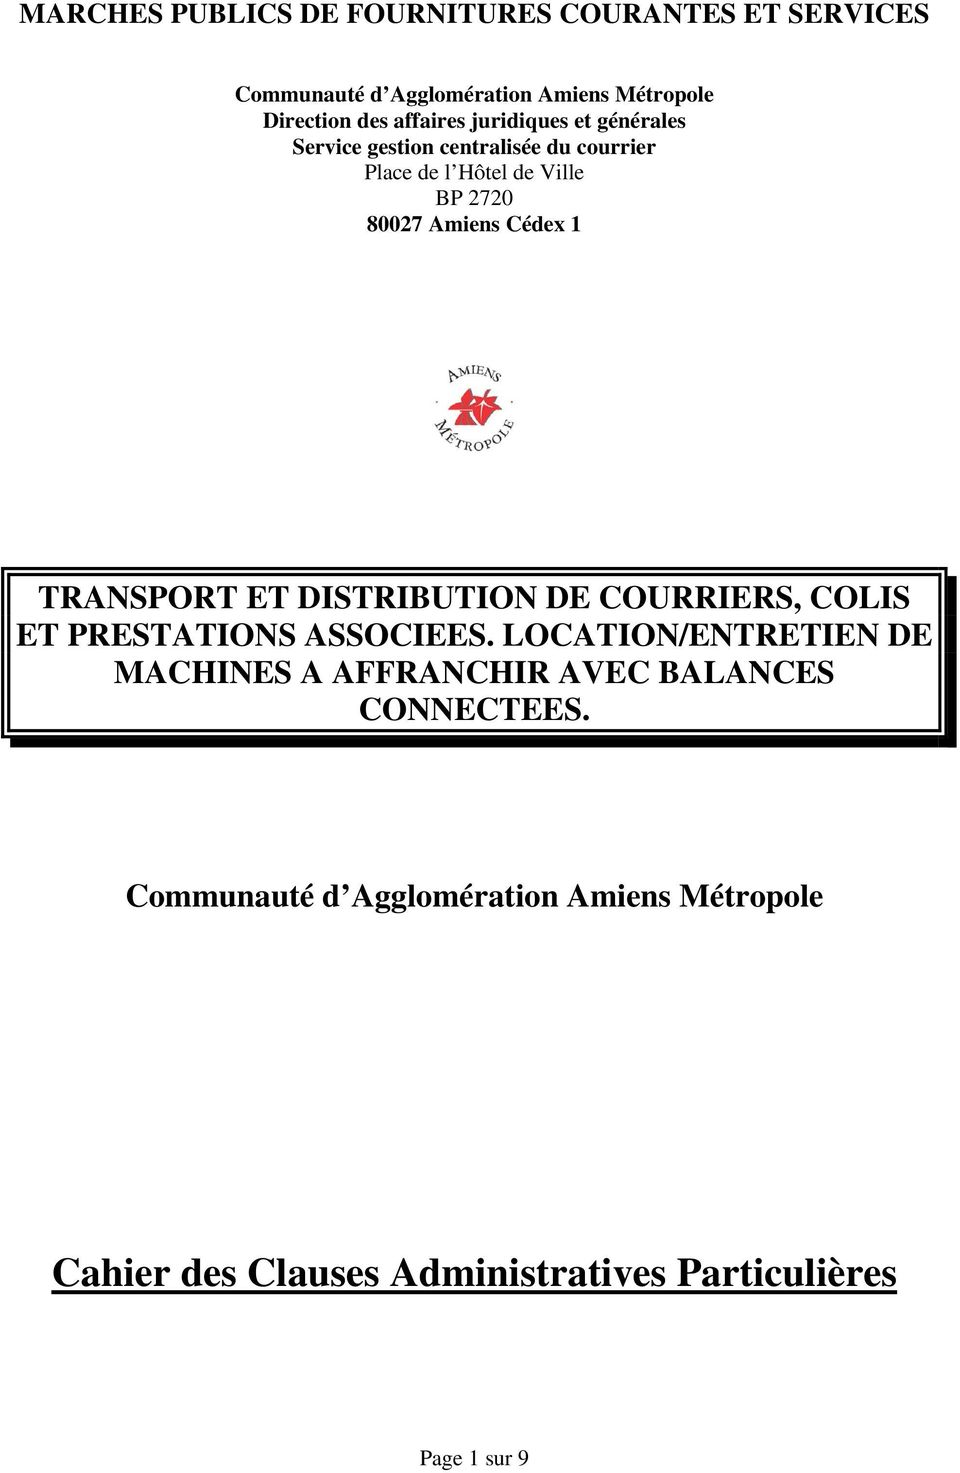 TRANSPORT ET DISTRIBUTION DE COURRIERS, COLIS ET PRESTATIONS ASSOCIEES.